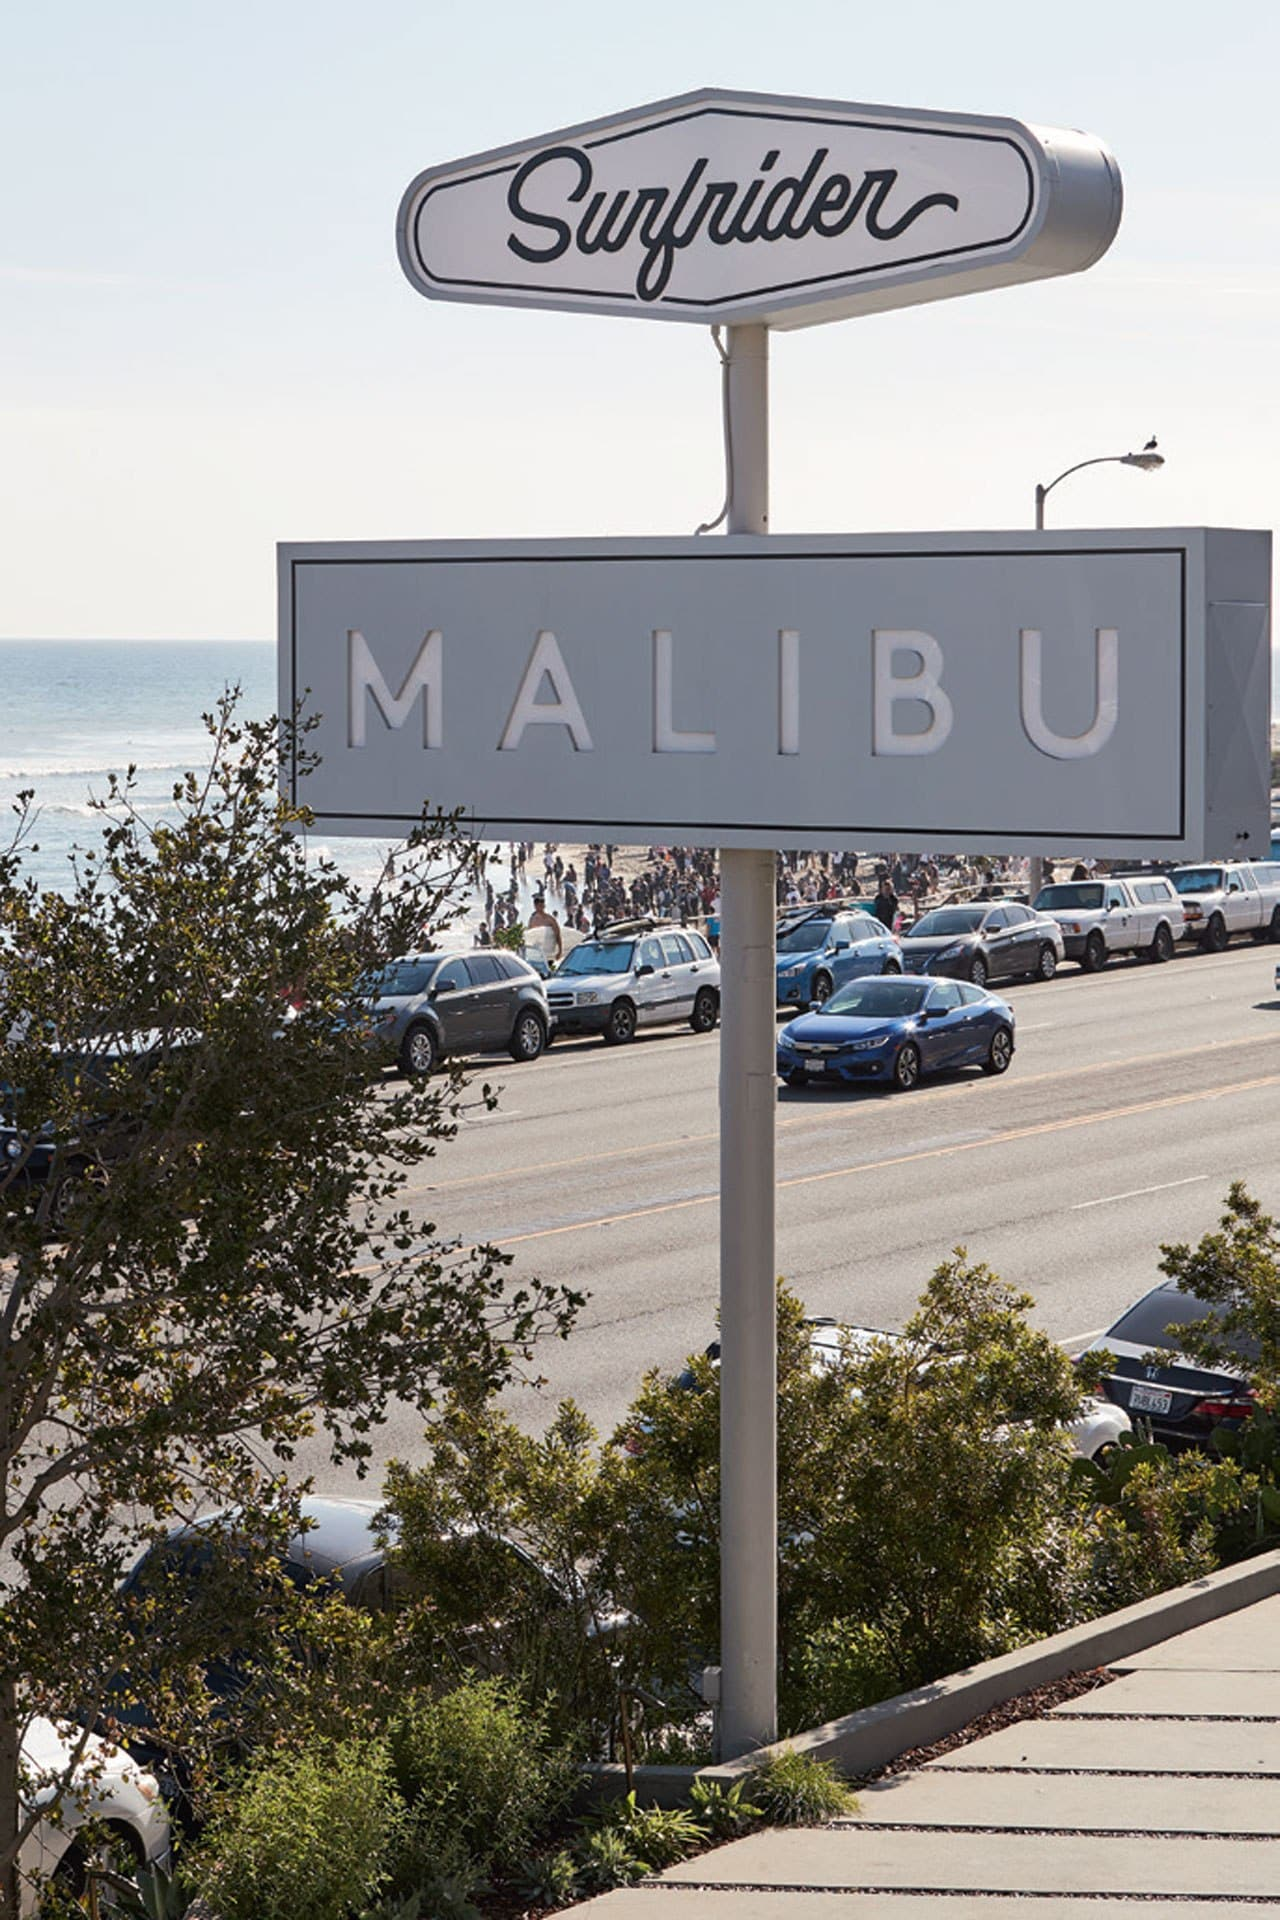 Outside Malibu's Surfrider hotel. Image credit: Julie Adams